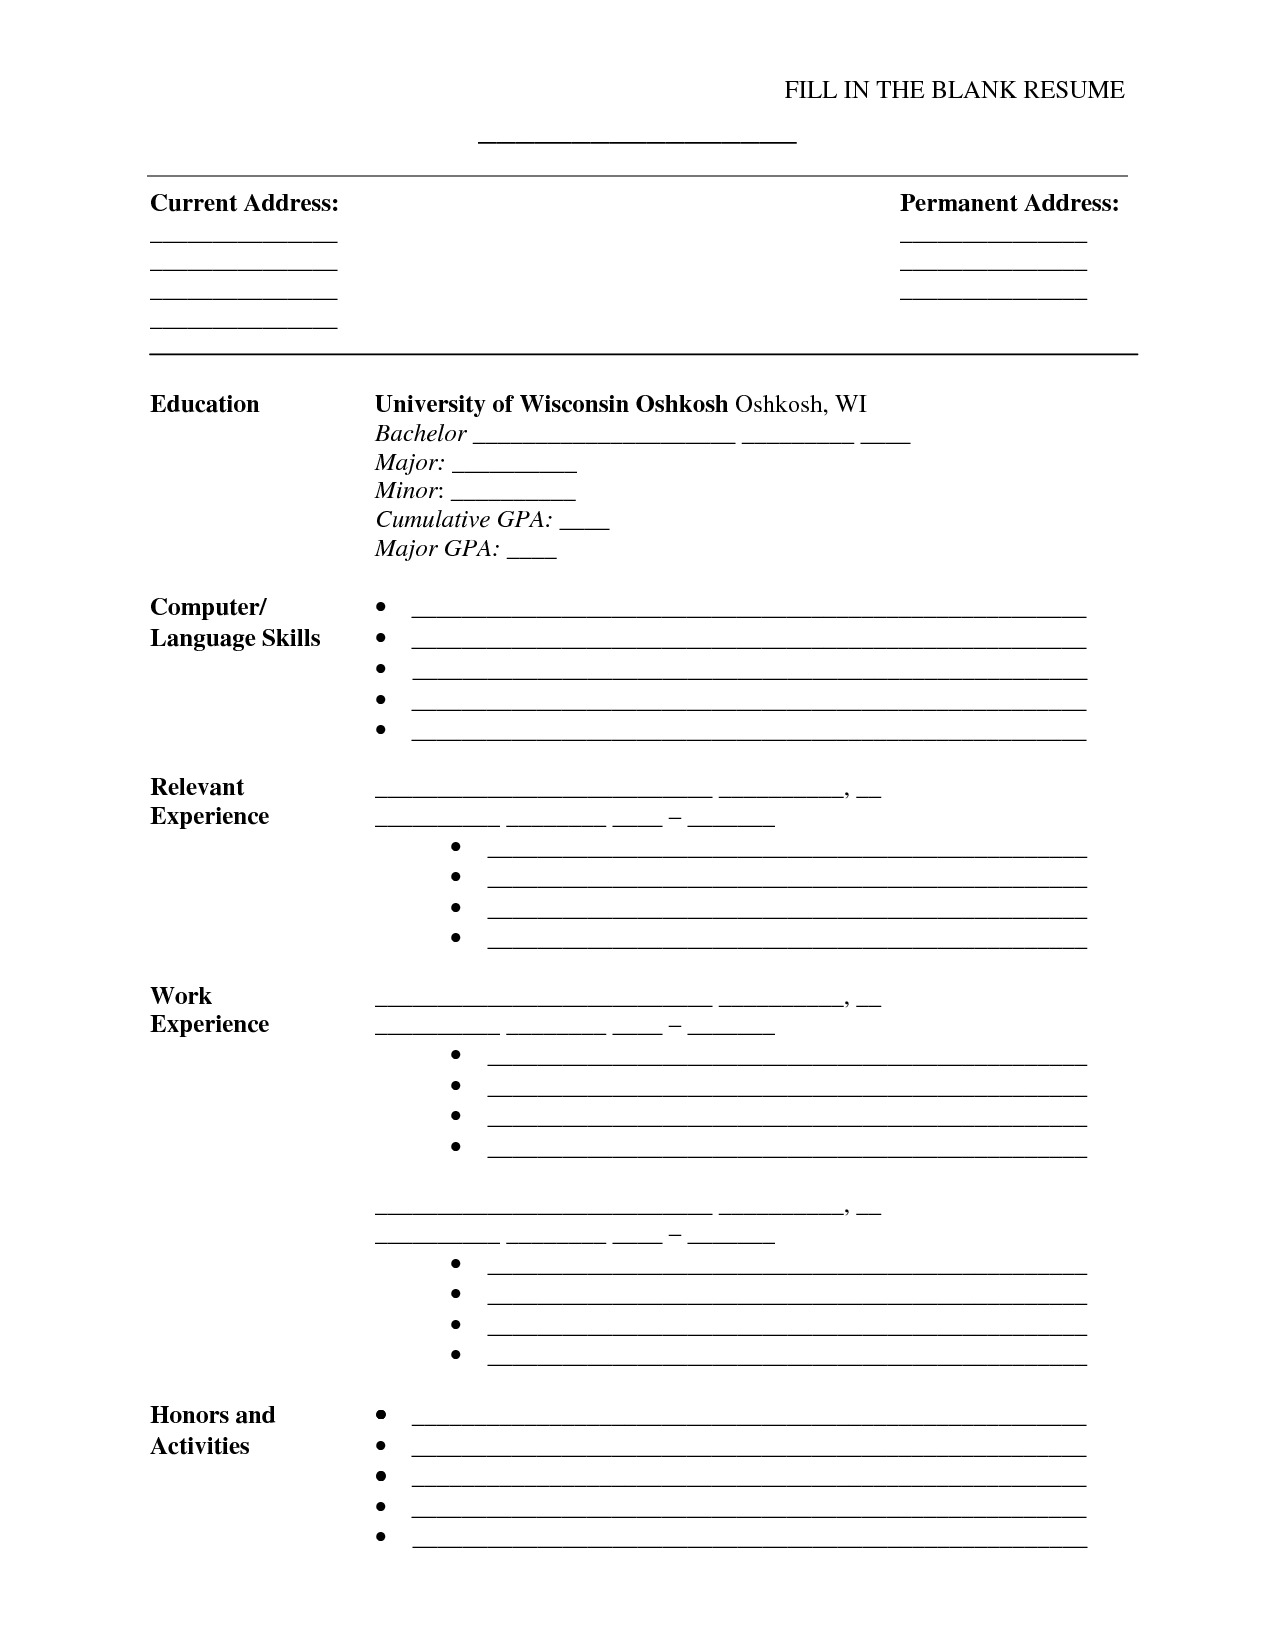 fill in the blank resume pdf httpwwwresumecareerinfo